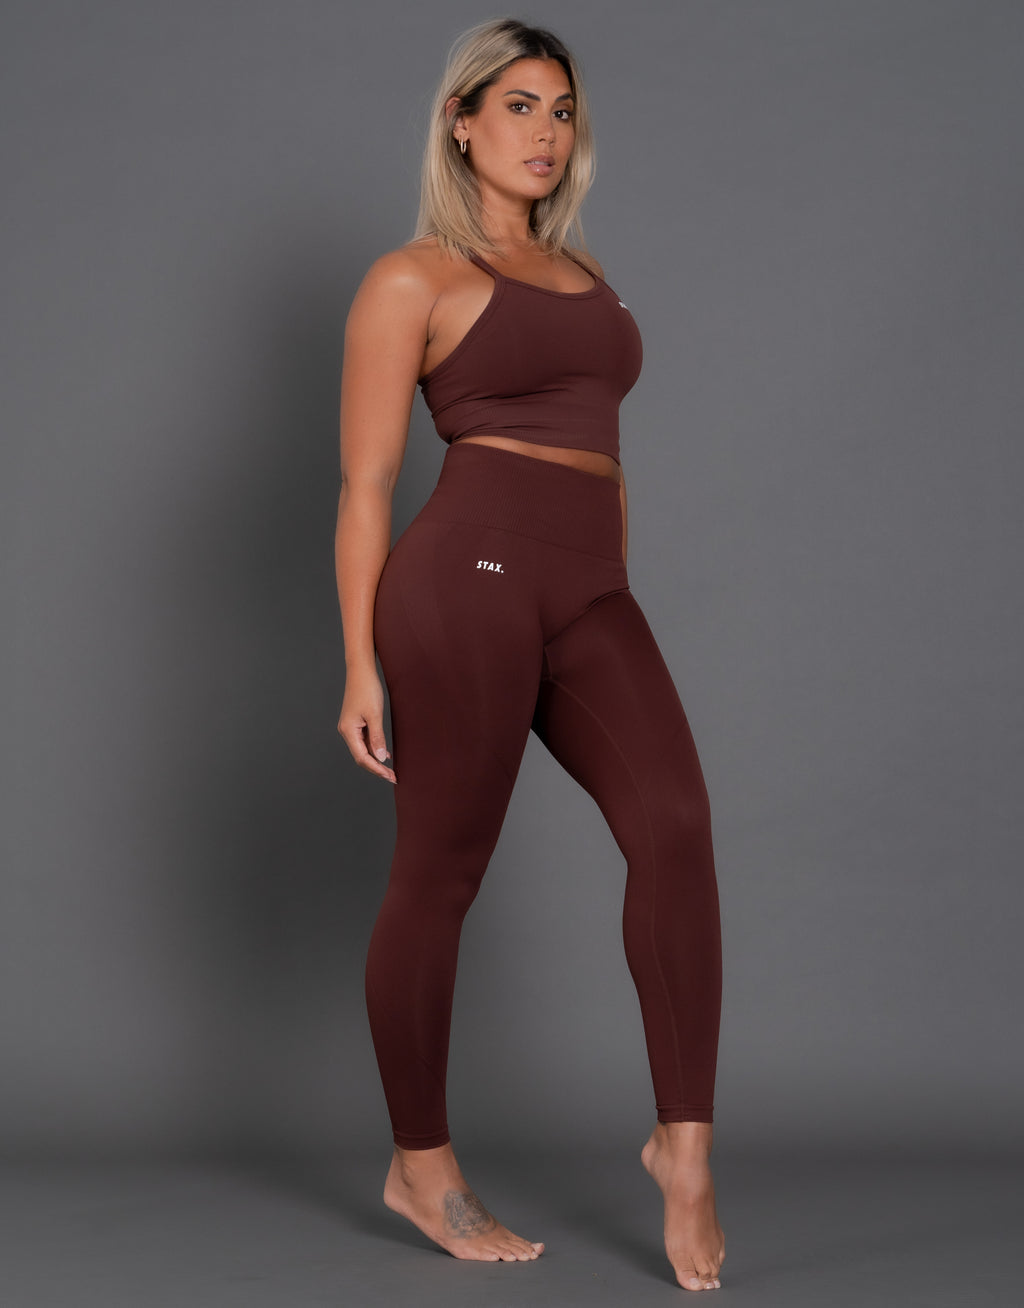 STAX. Premium Seamless V2 Tights - Umber